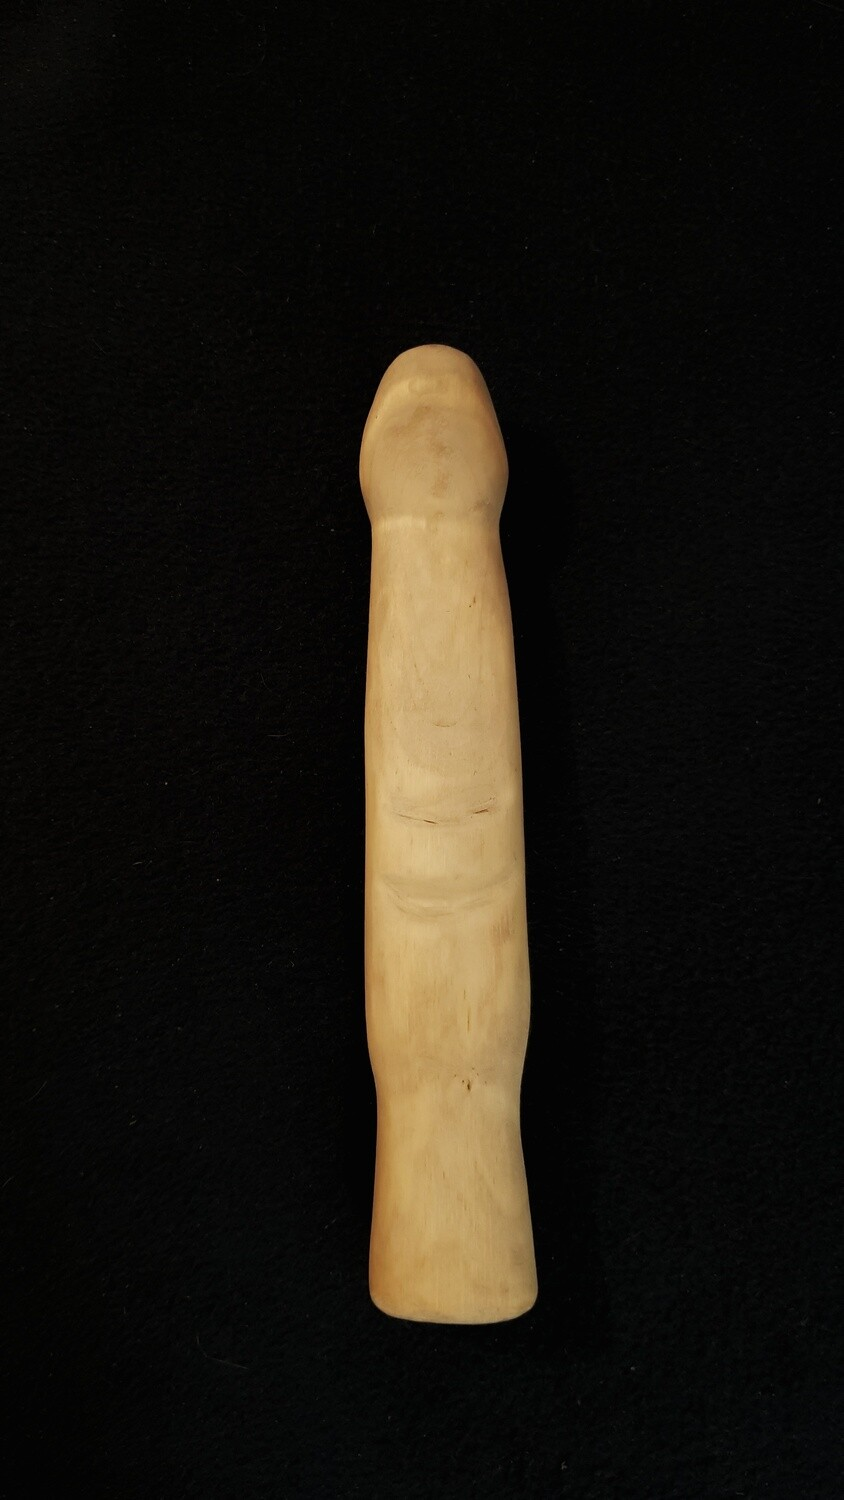 Enjoy three Holzdildo.love